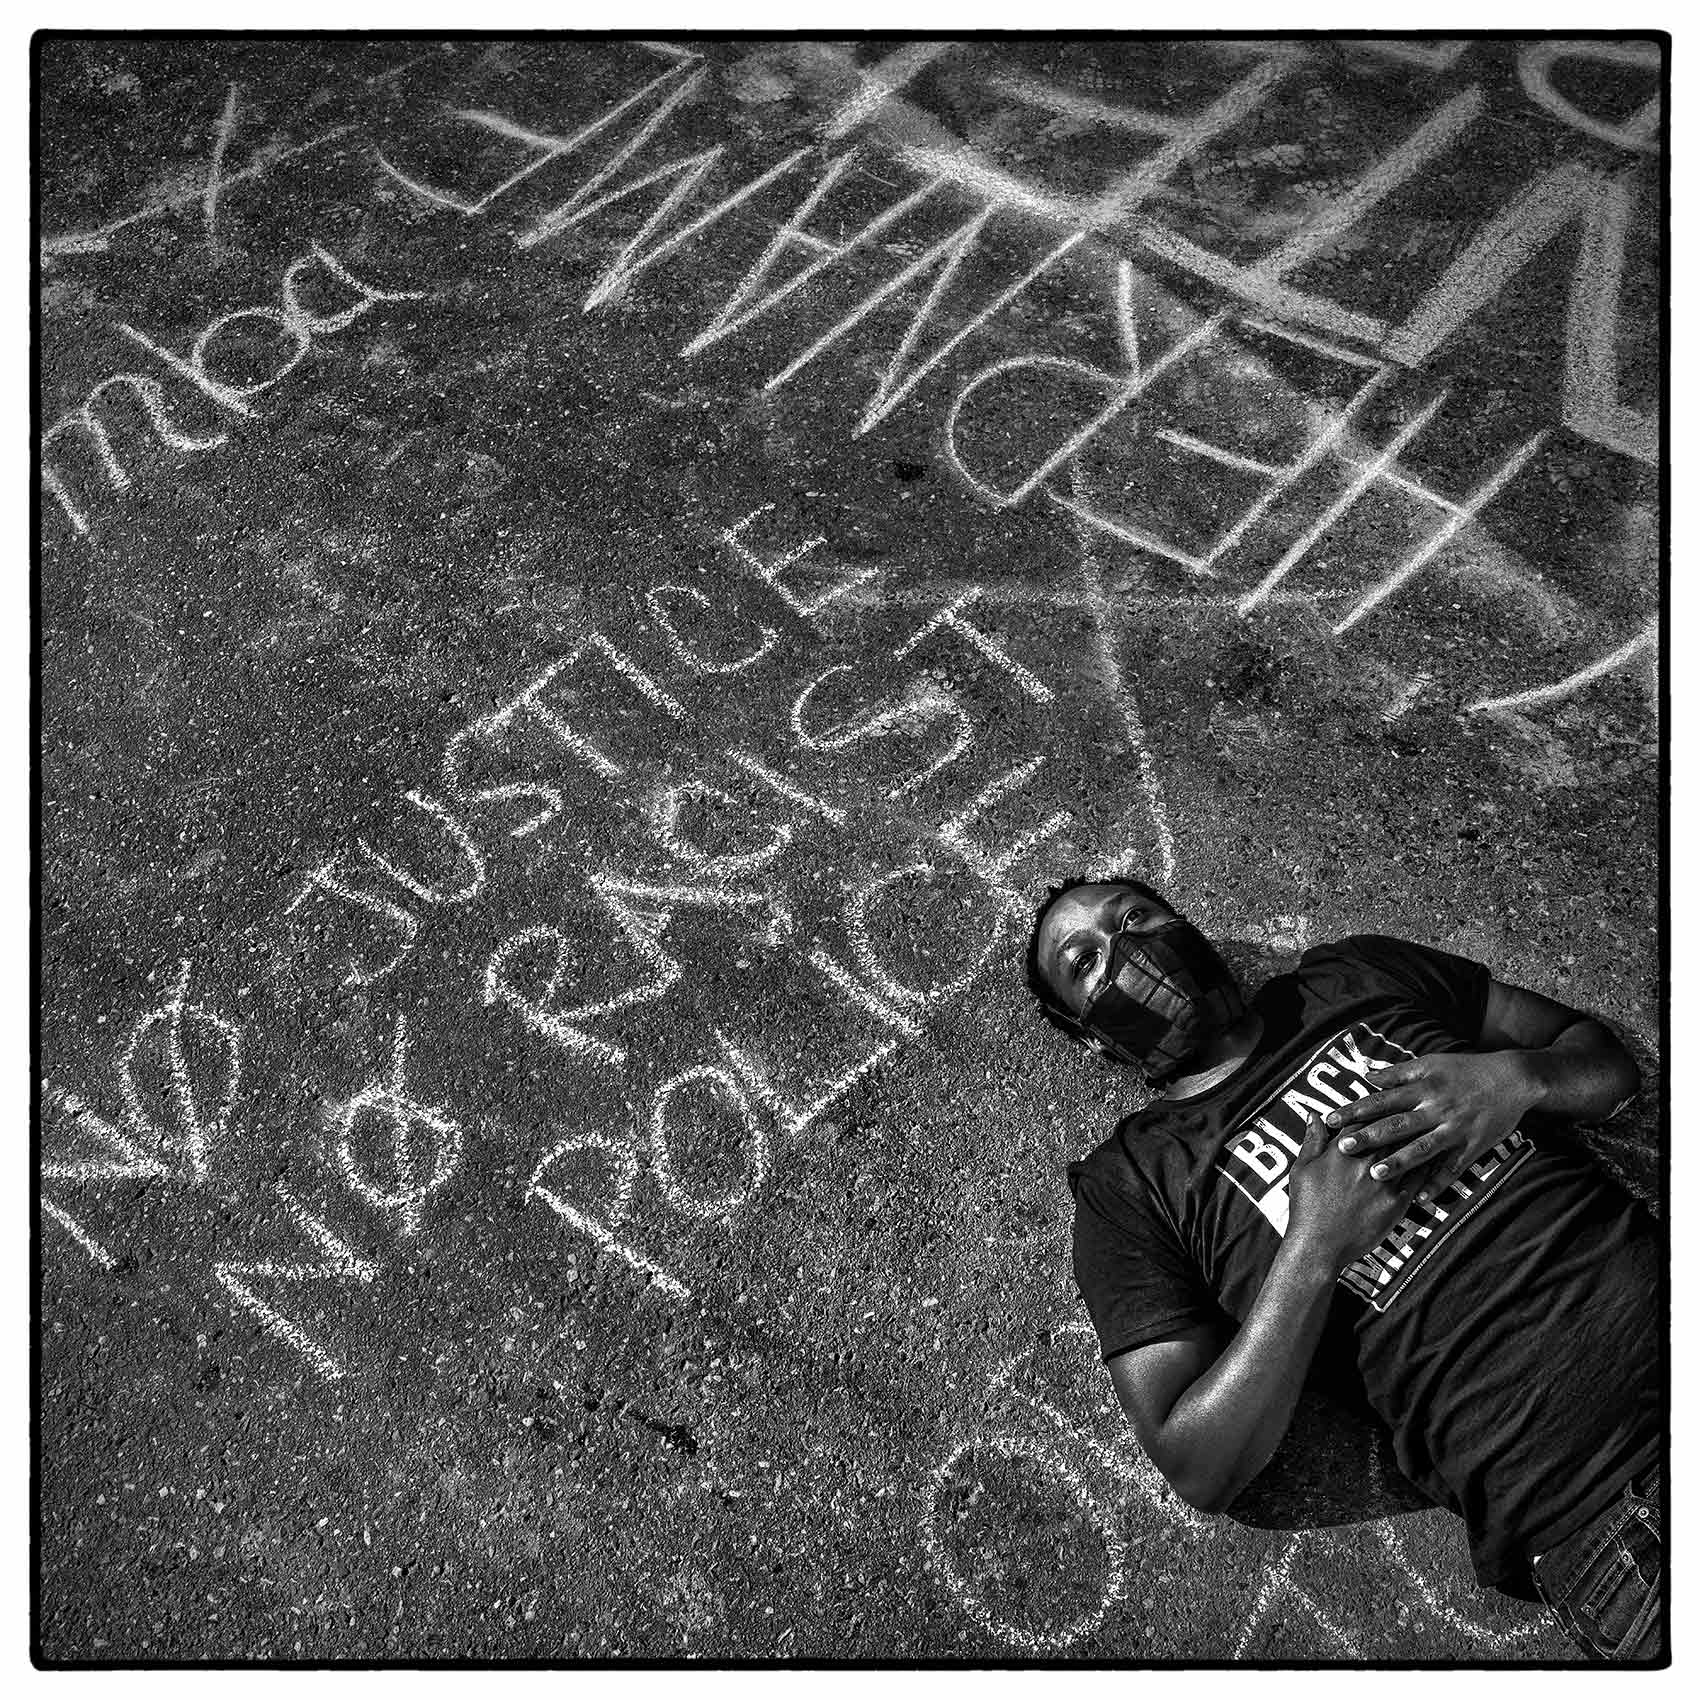 a-black-lives-matter-protestor-lays-on-the-street-in-toronto-during-a-protest